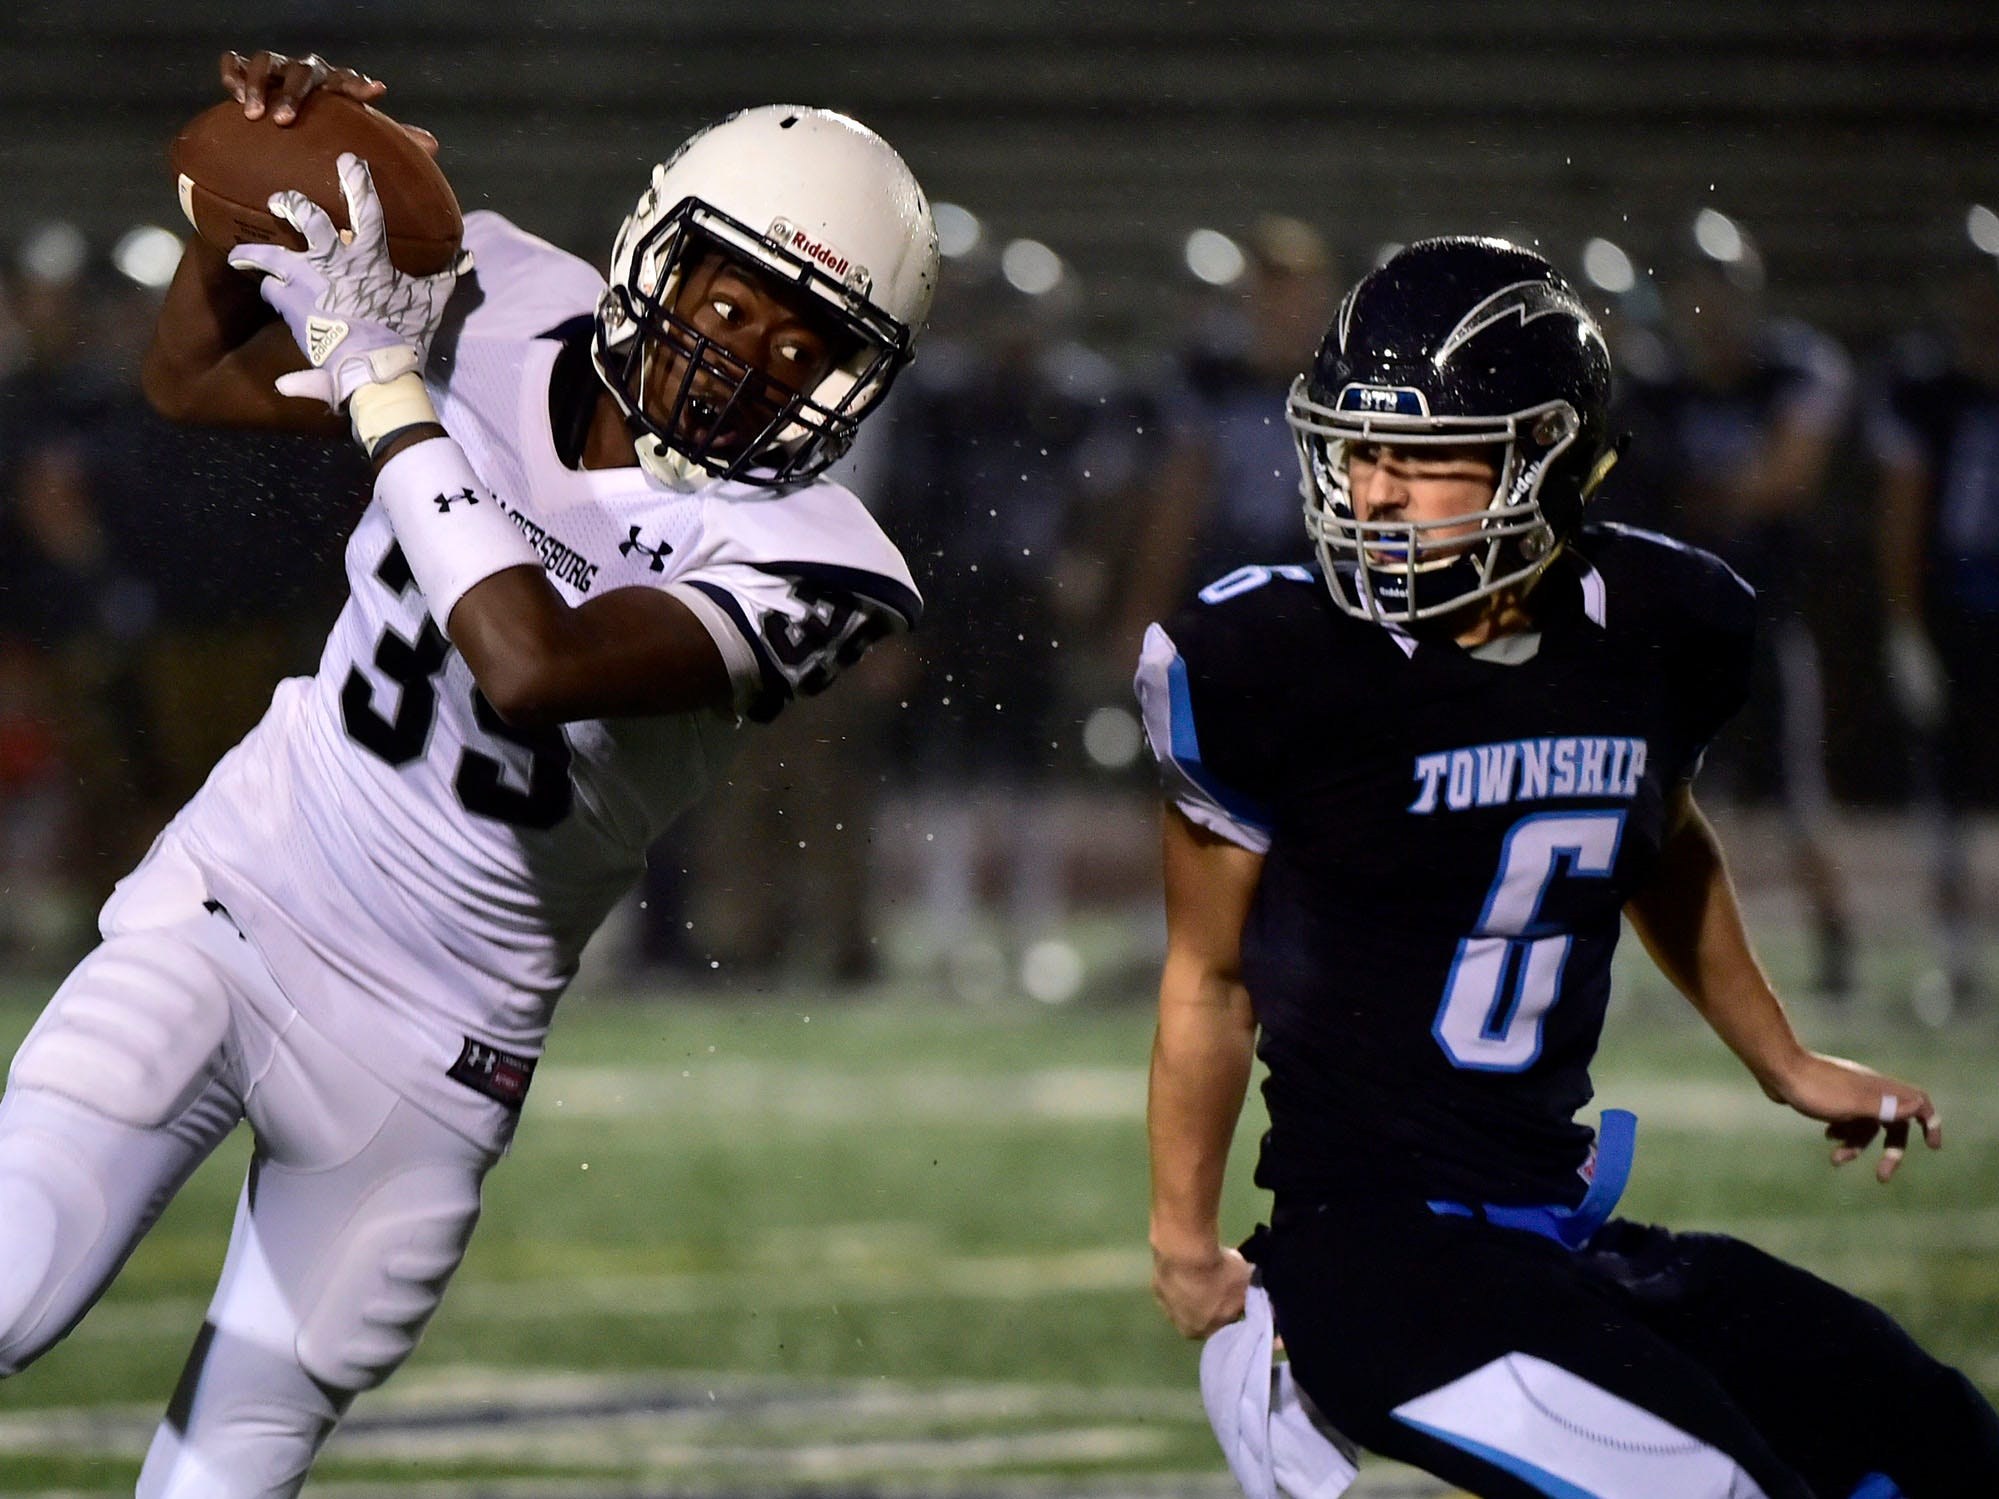 Chambersburg's DaQuan Rogers (35) catches a pass over Manheim Central's Brent Benjamin. Chambersburg Trojans dropped a close game 20-17 to Manheim Township Blue Streaks in the rain during PIAA District 3 playoff football on Friday, Nov. 2, 2018.